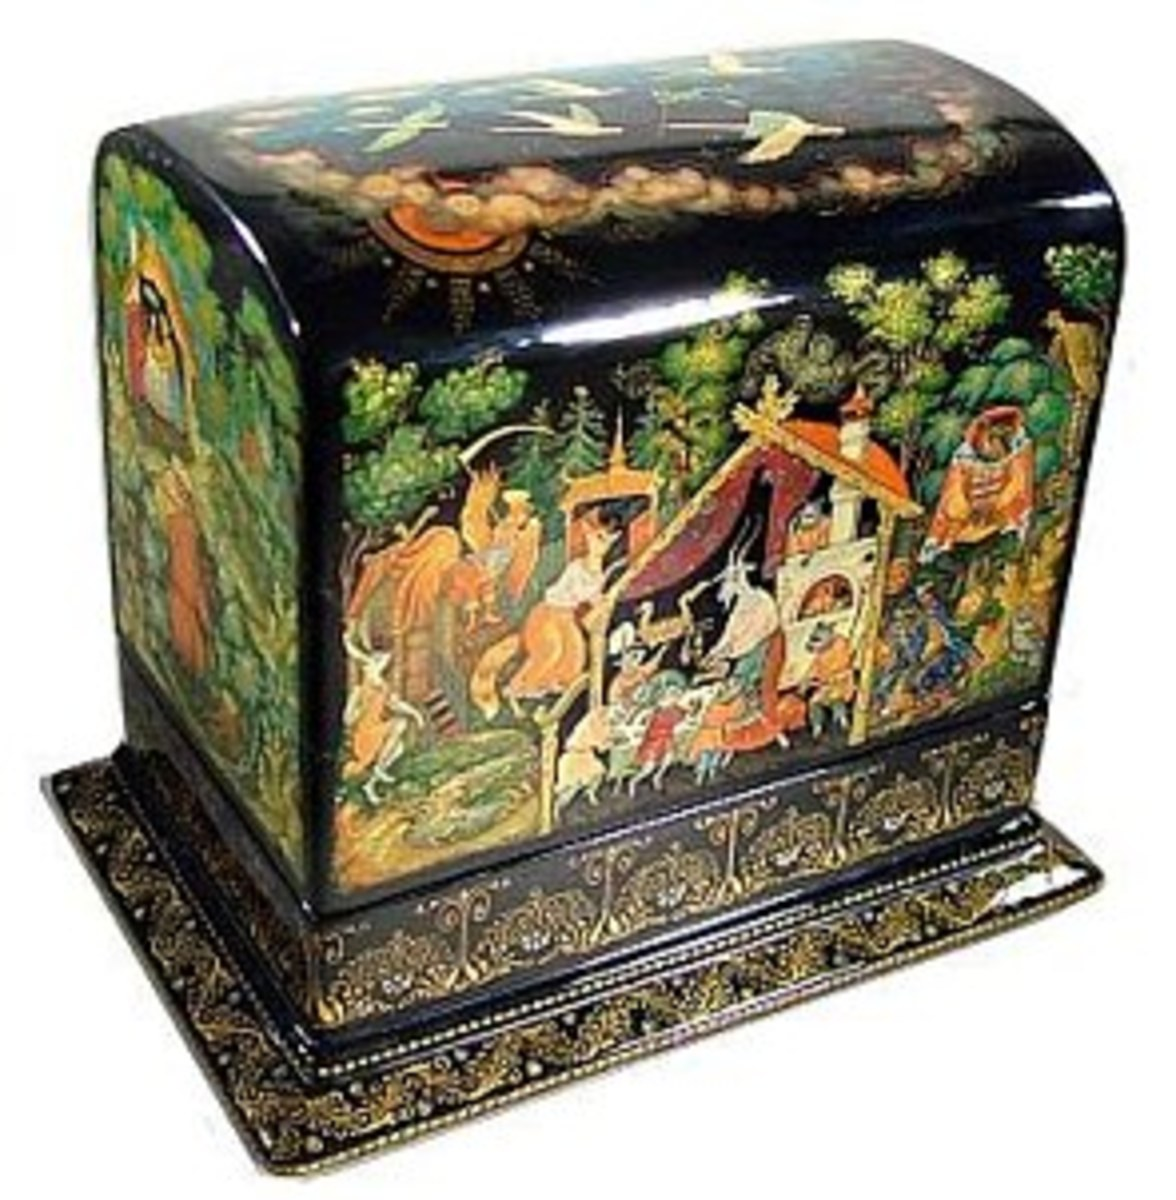 Beautiful Russian lacquered box that depicts a Russian fairy tale.